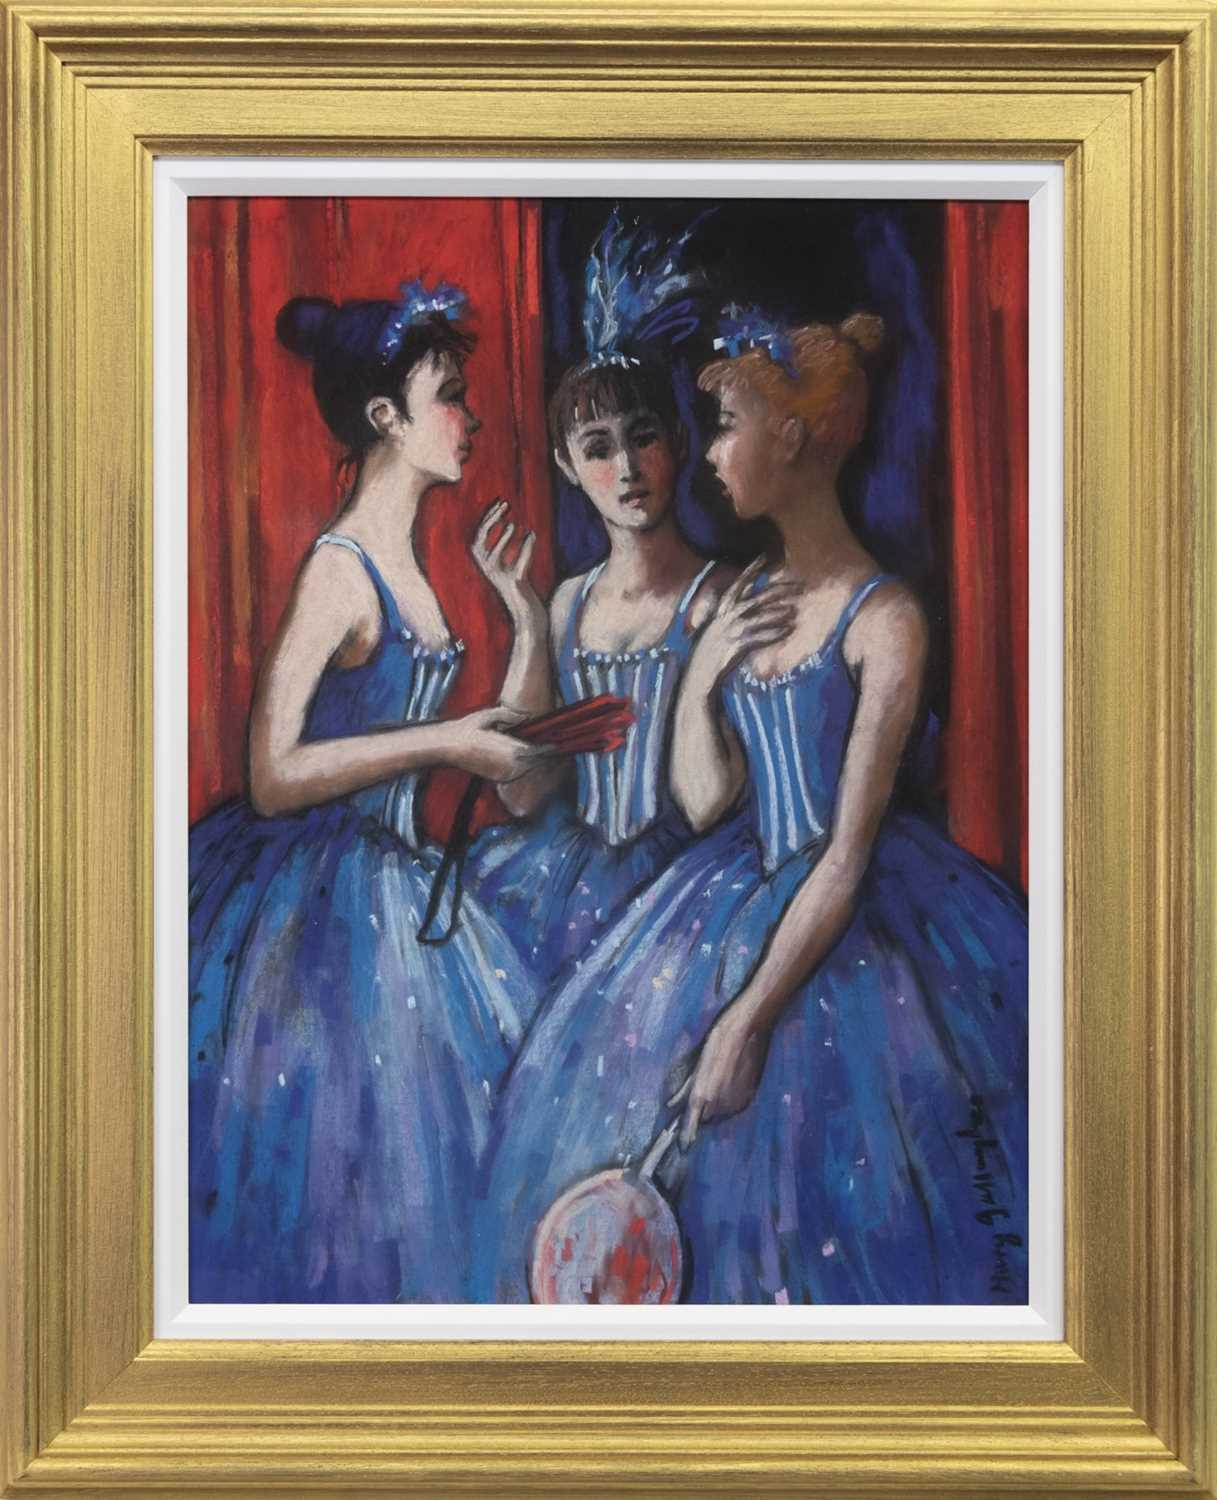 Lot 509-BEHIND THE SCENES, AN OIL BY MARY GALLAGHER